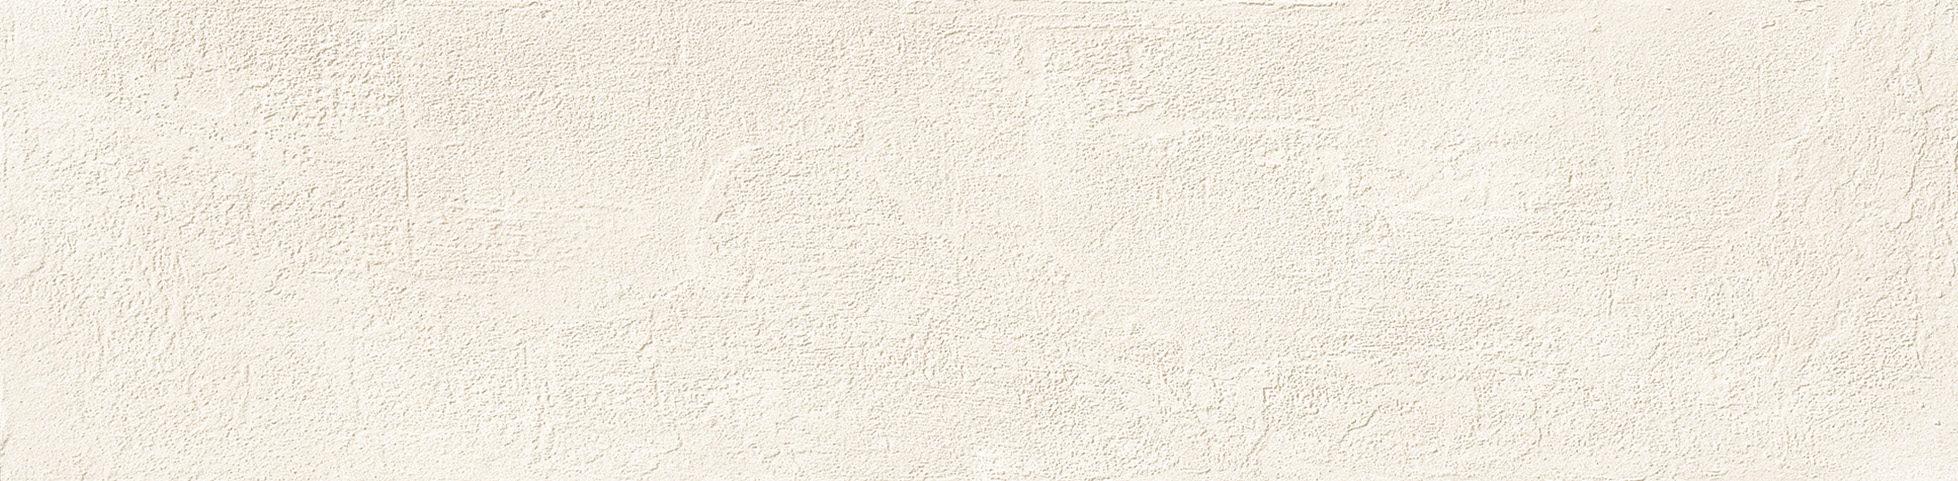 Bricktrend Almond by Marquis Collection 1